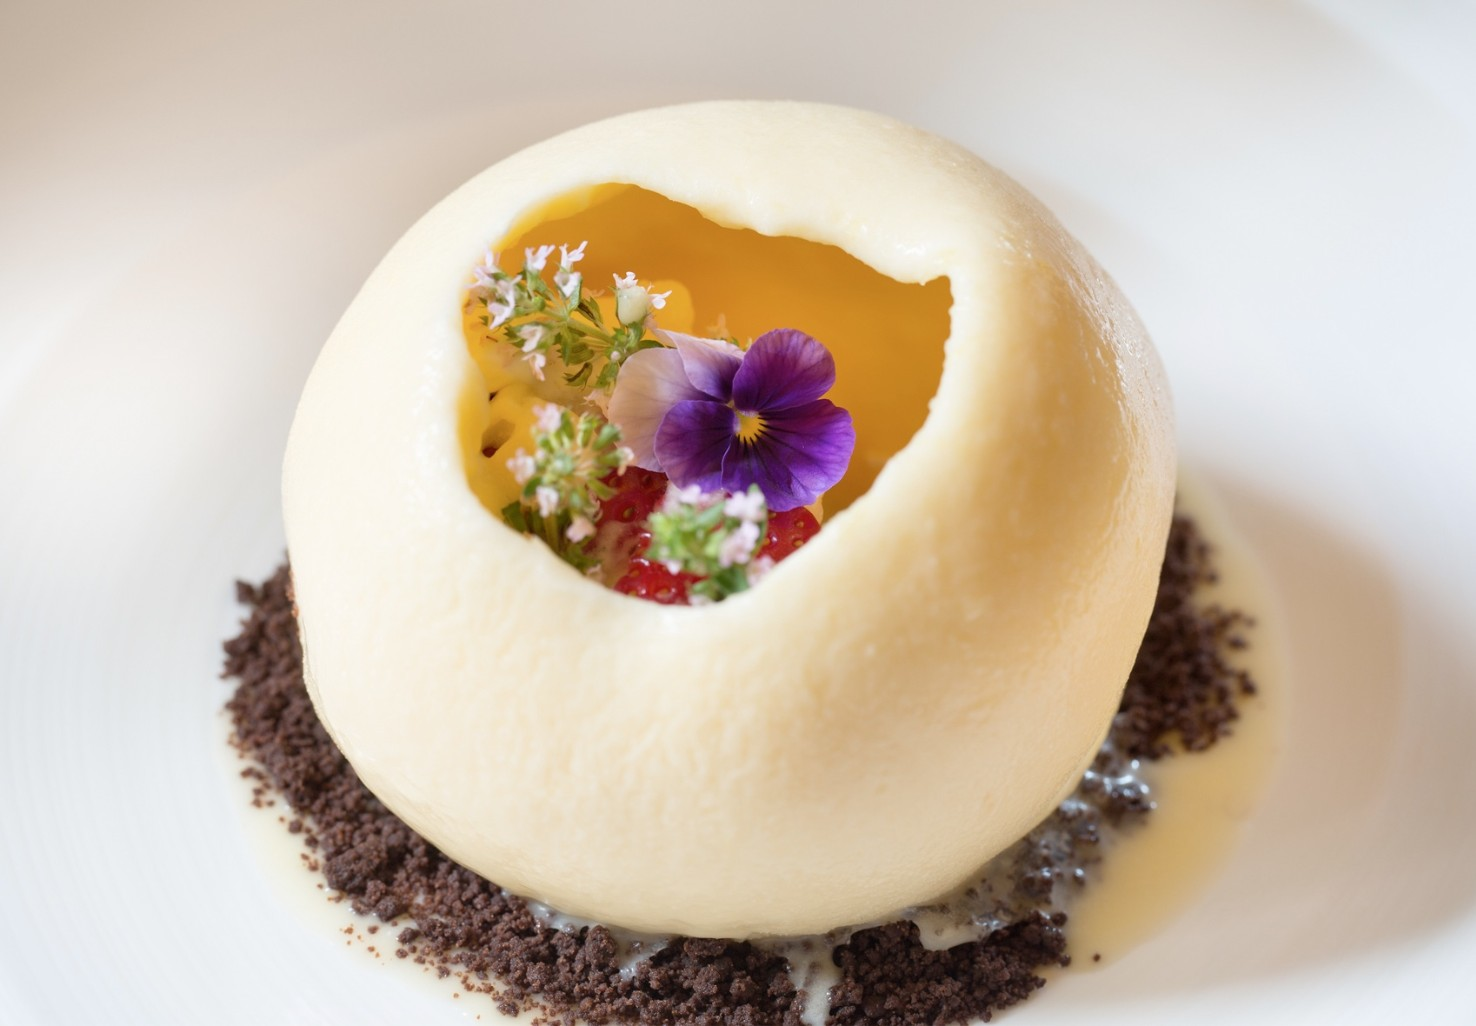 Beautiful gourmet dessert with spring flowers